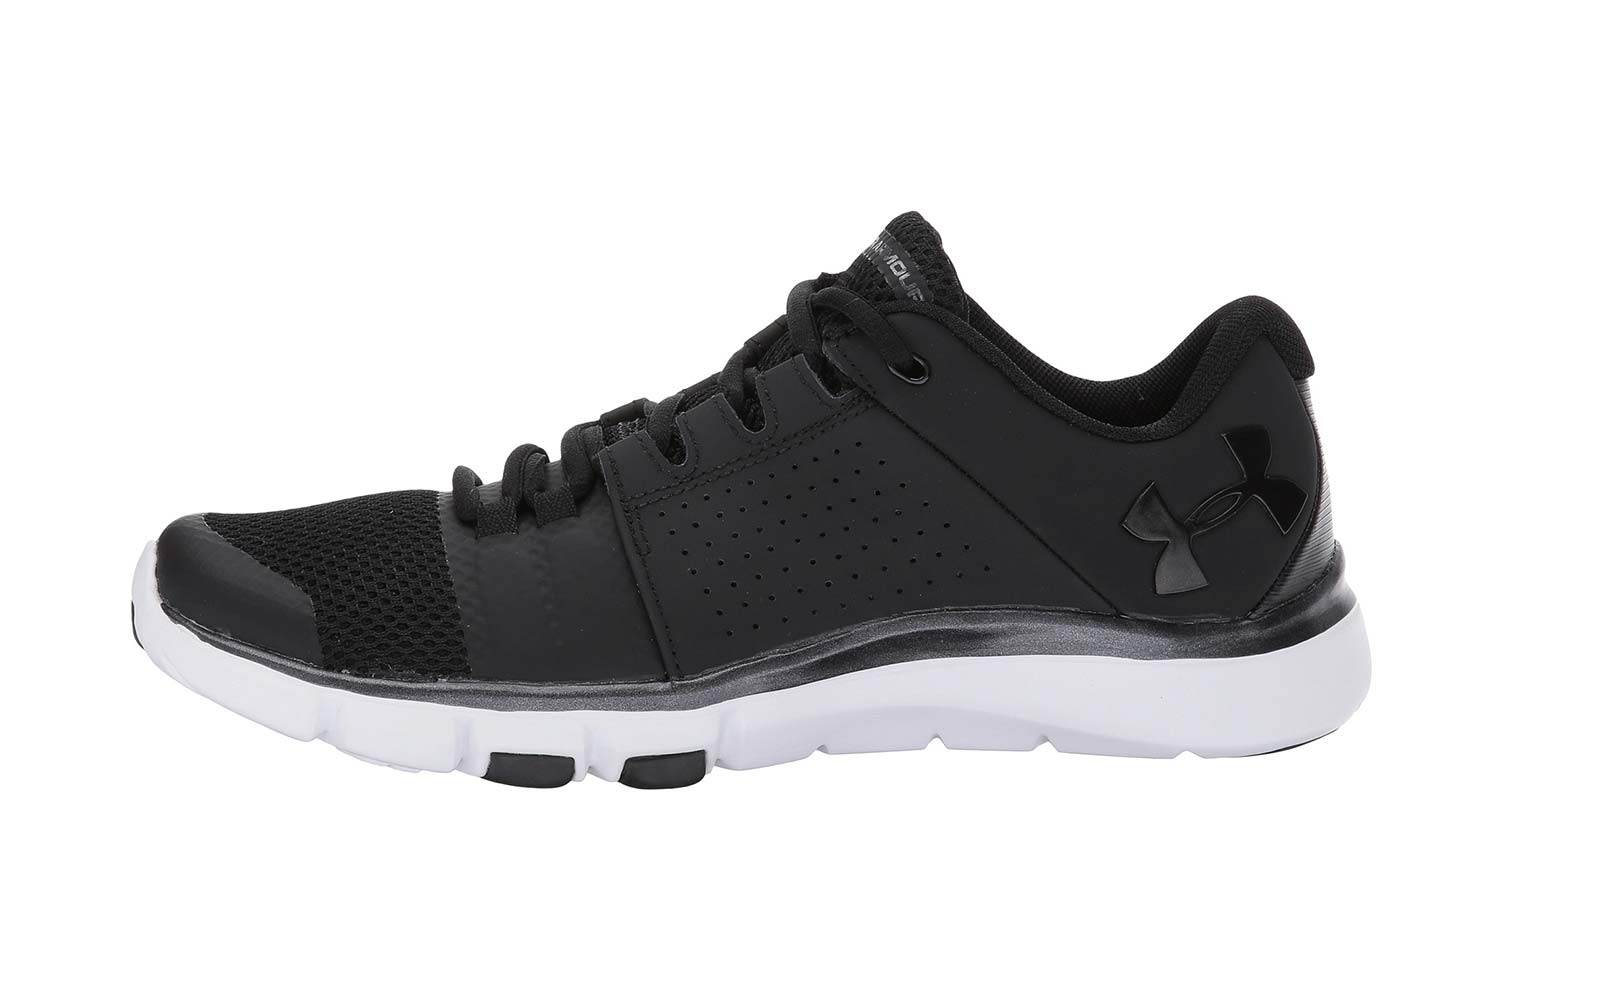 Under Armour Strive sneaker